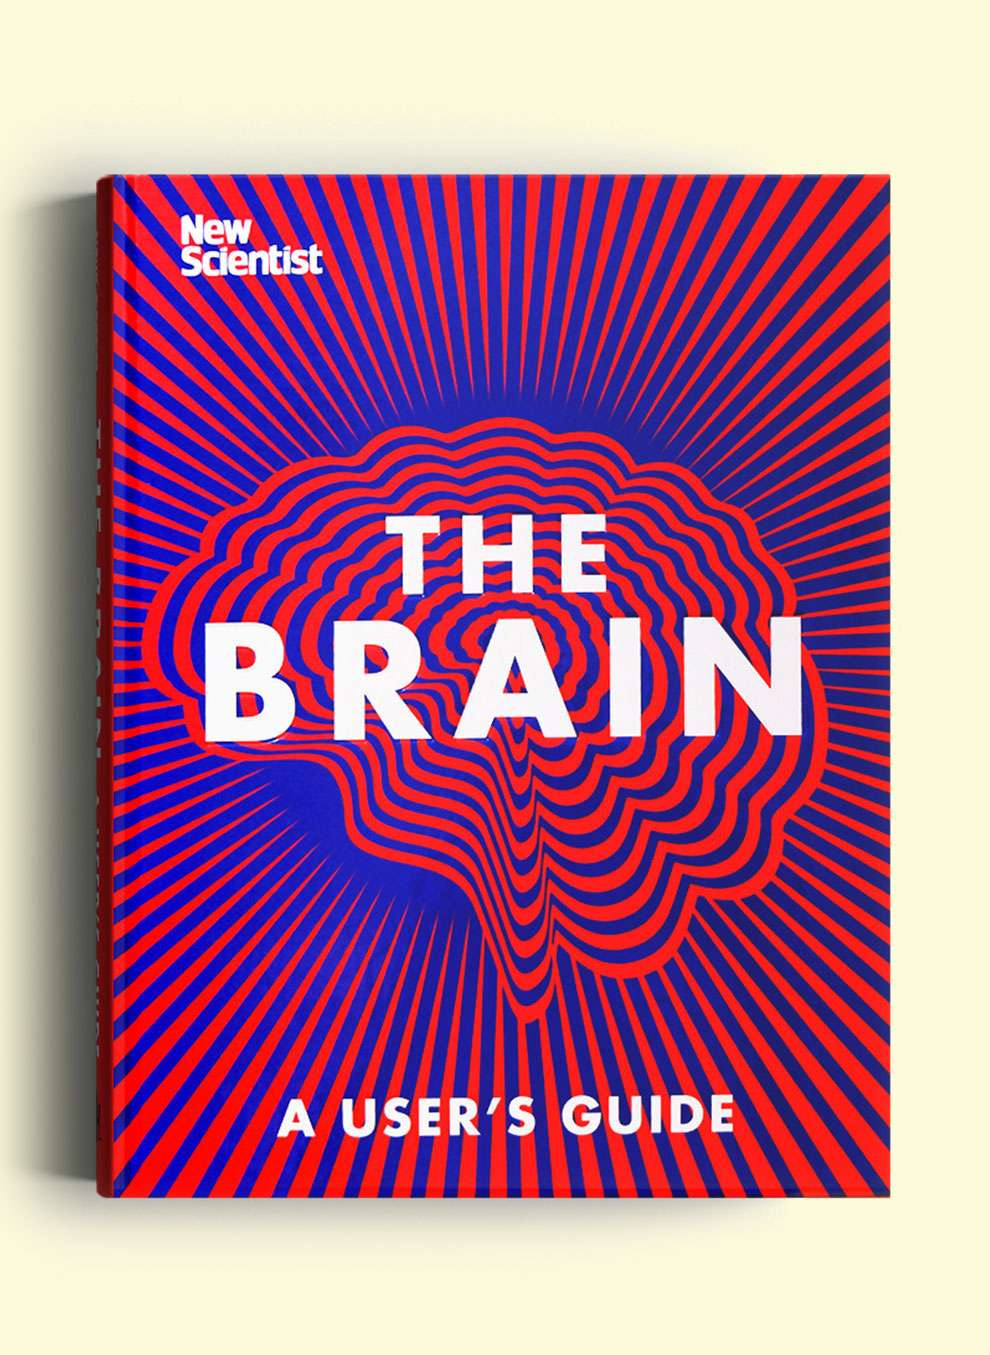 Valentina  D'Efilippo, New scientist book cover - graphic illustration of a brain